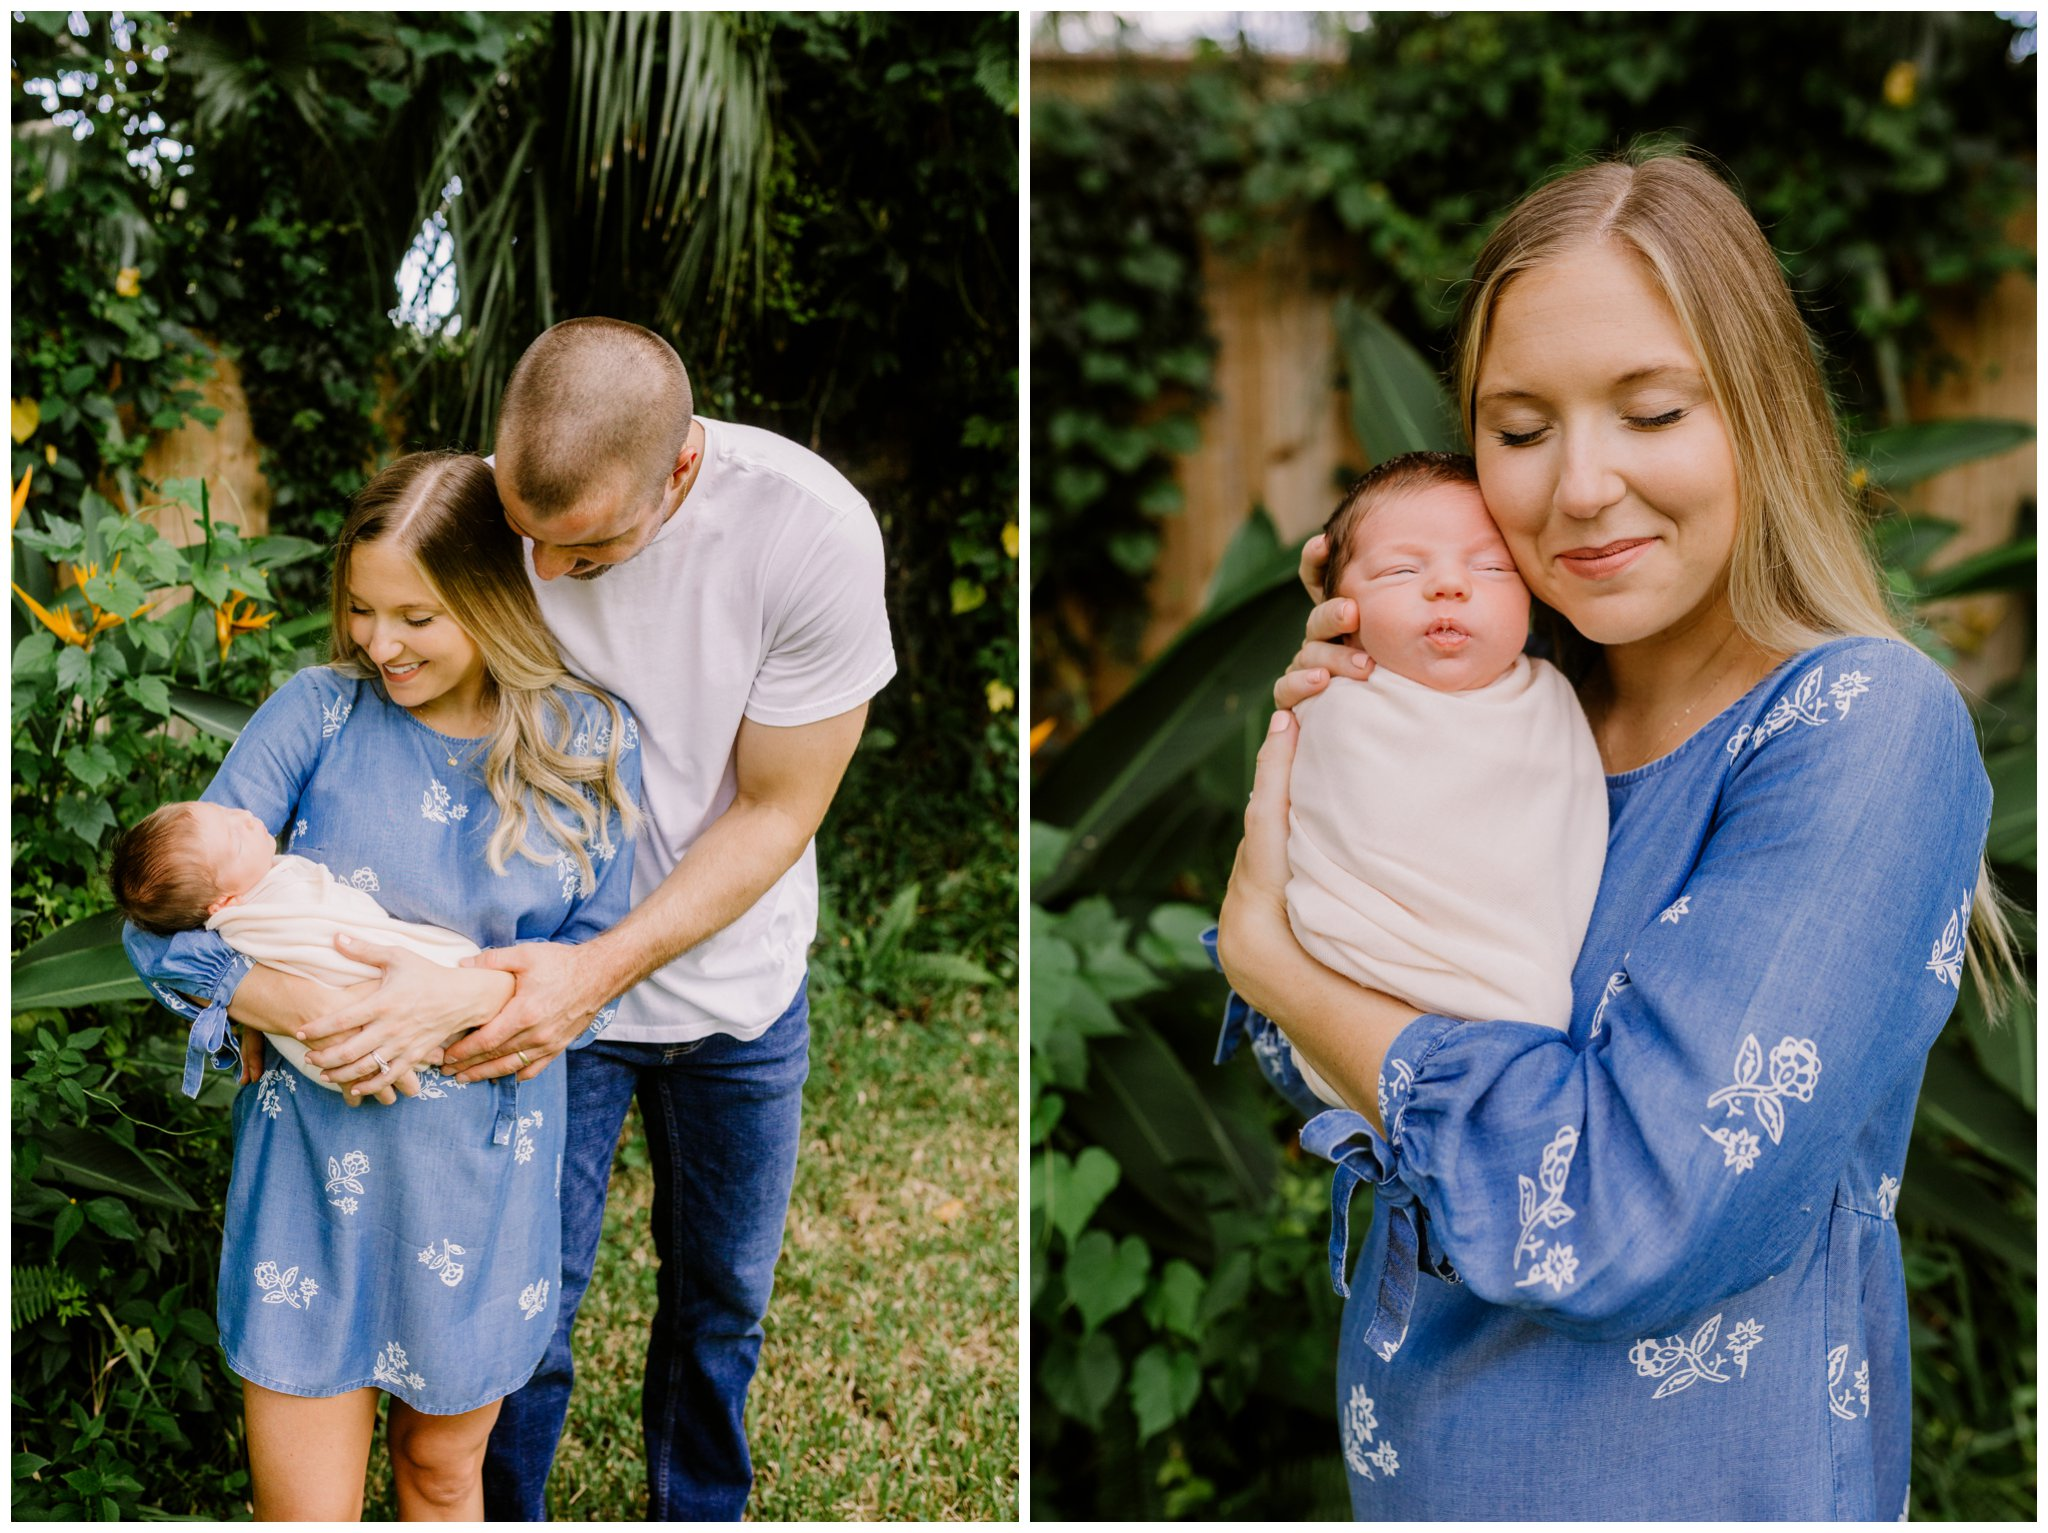 palm beach newborn photographer- south florida newborn photographers- jupiter family photographer- palm beach photographers- stuart florida photographers- palm beach- newborn photos_0013.jpg